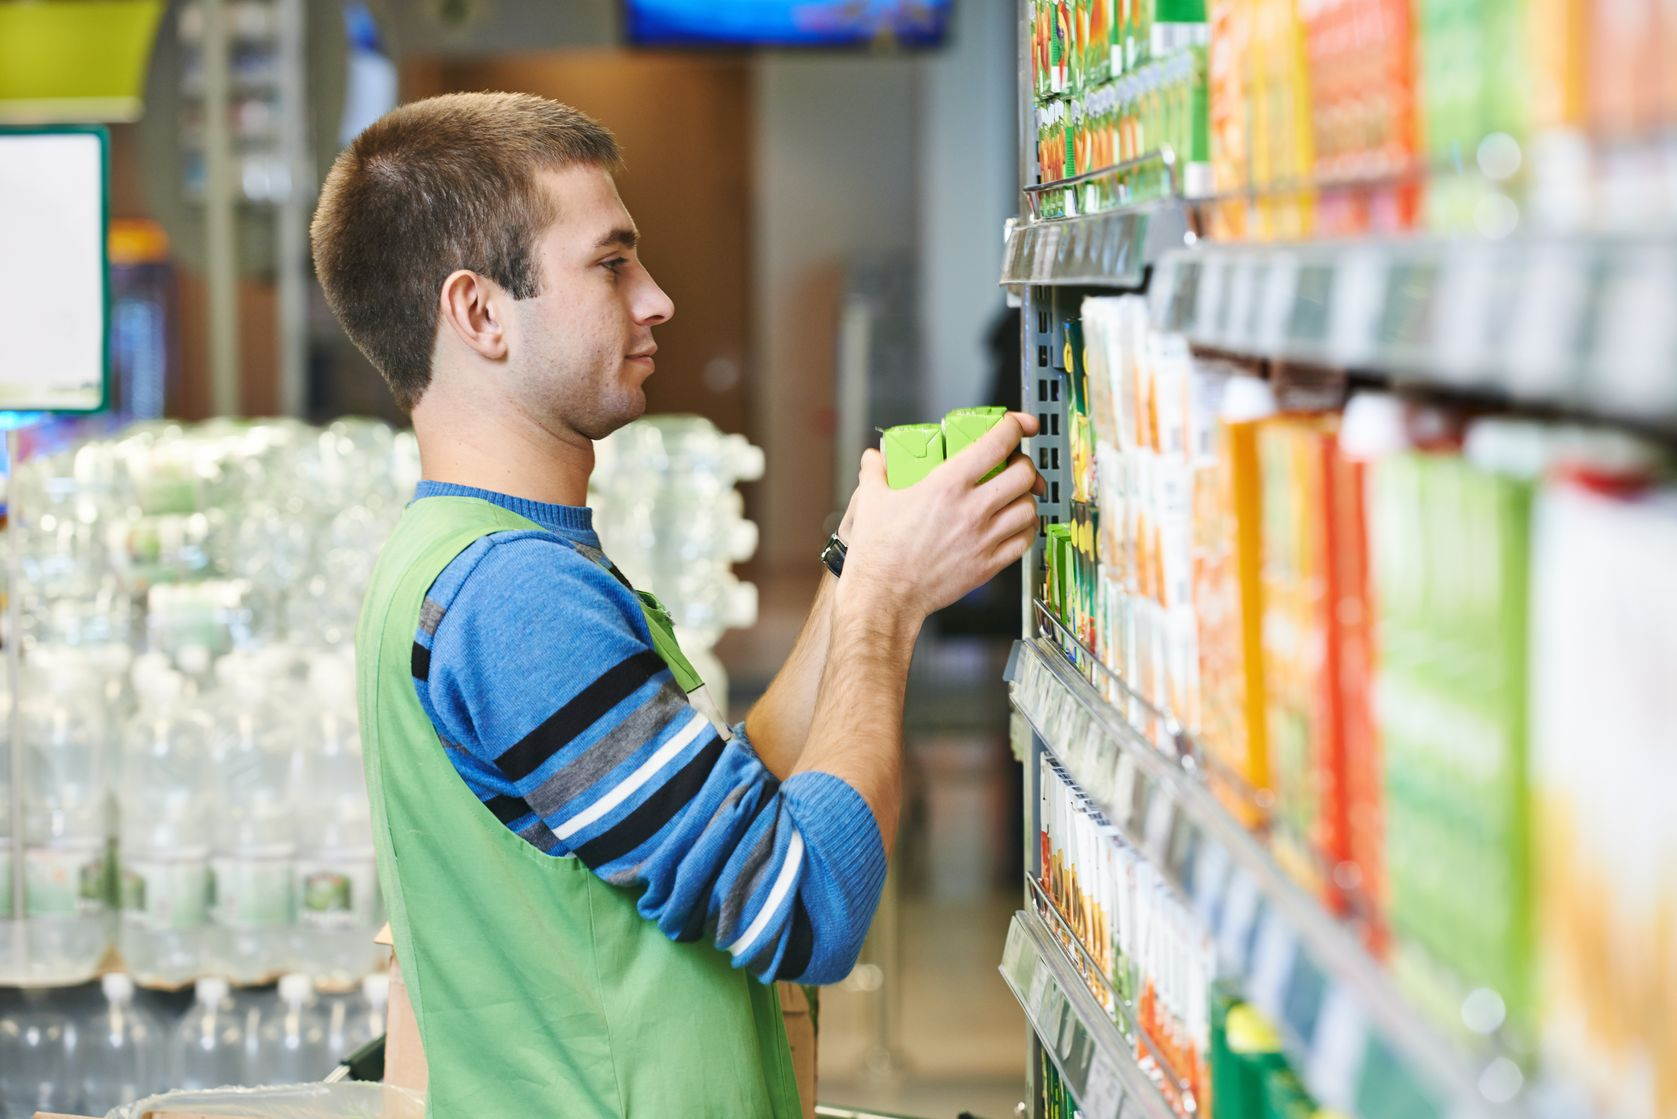 young man putting products on shelves